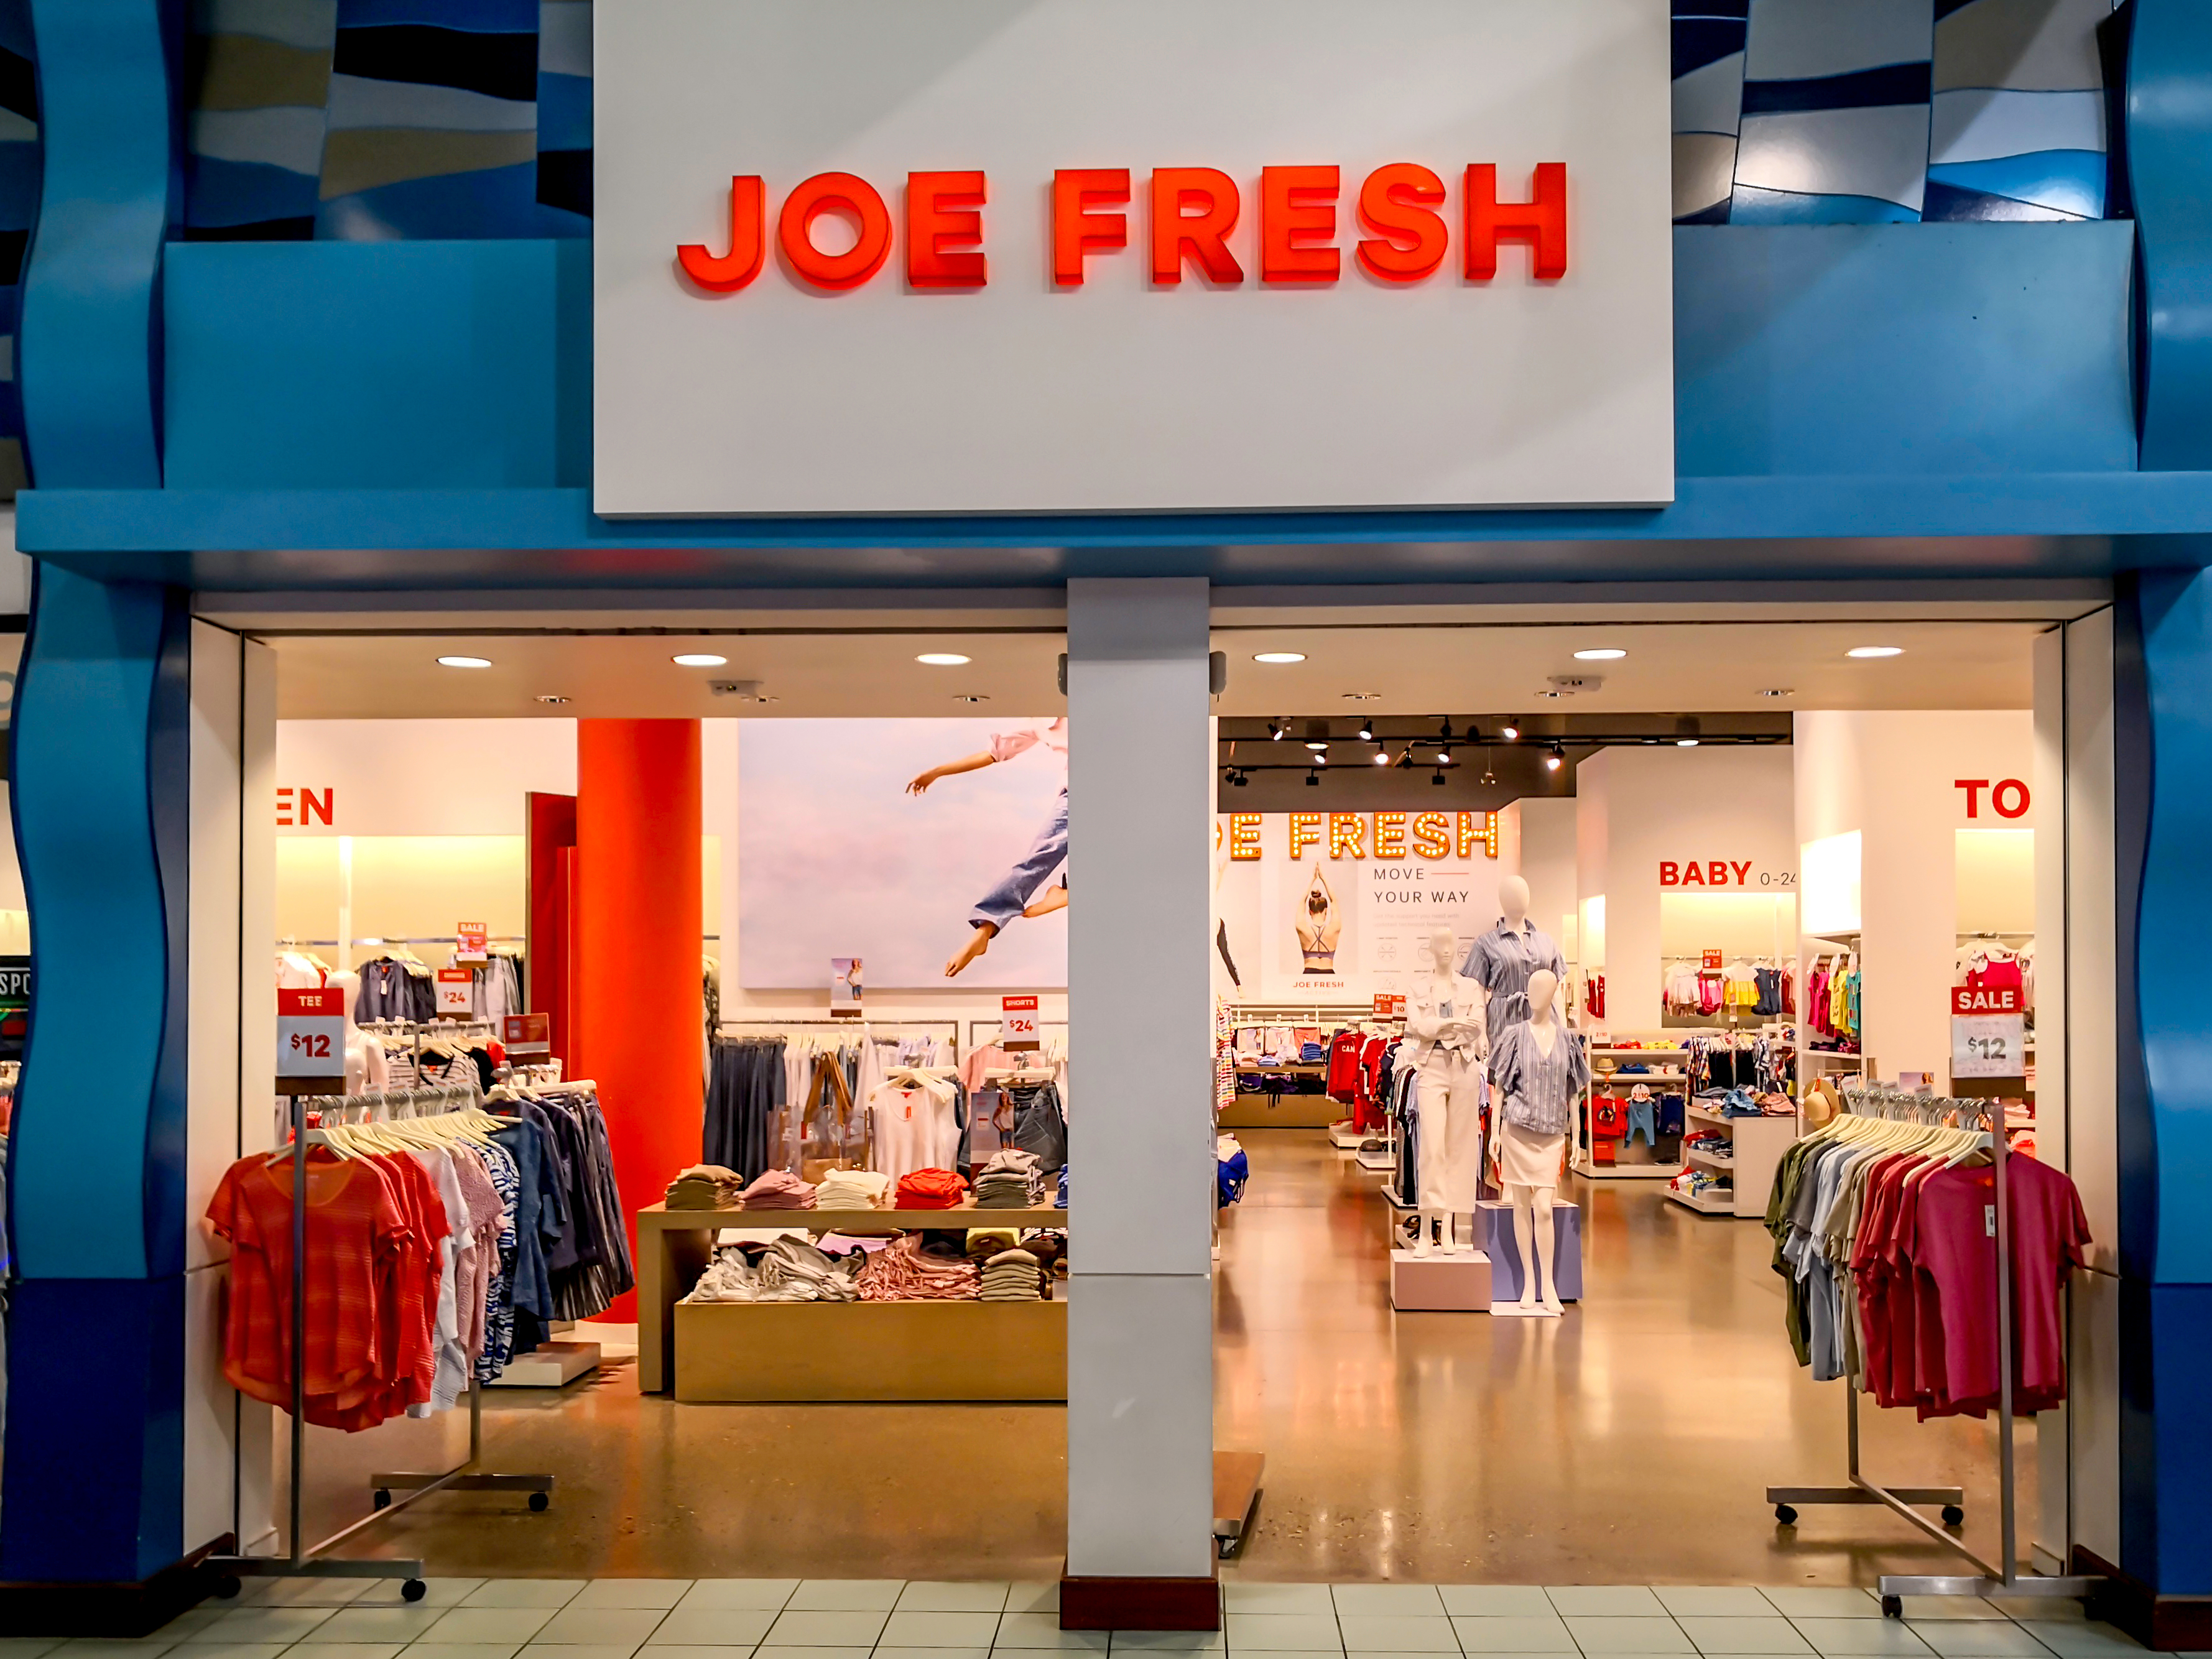 Joe Fresh store front at Vaughan Mills mall near Toronto. Joe Fresh is a fashion brand and retail chain for Canadian food distributor Loblaw Companies